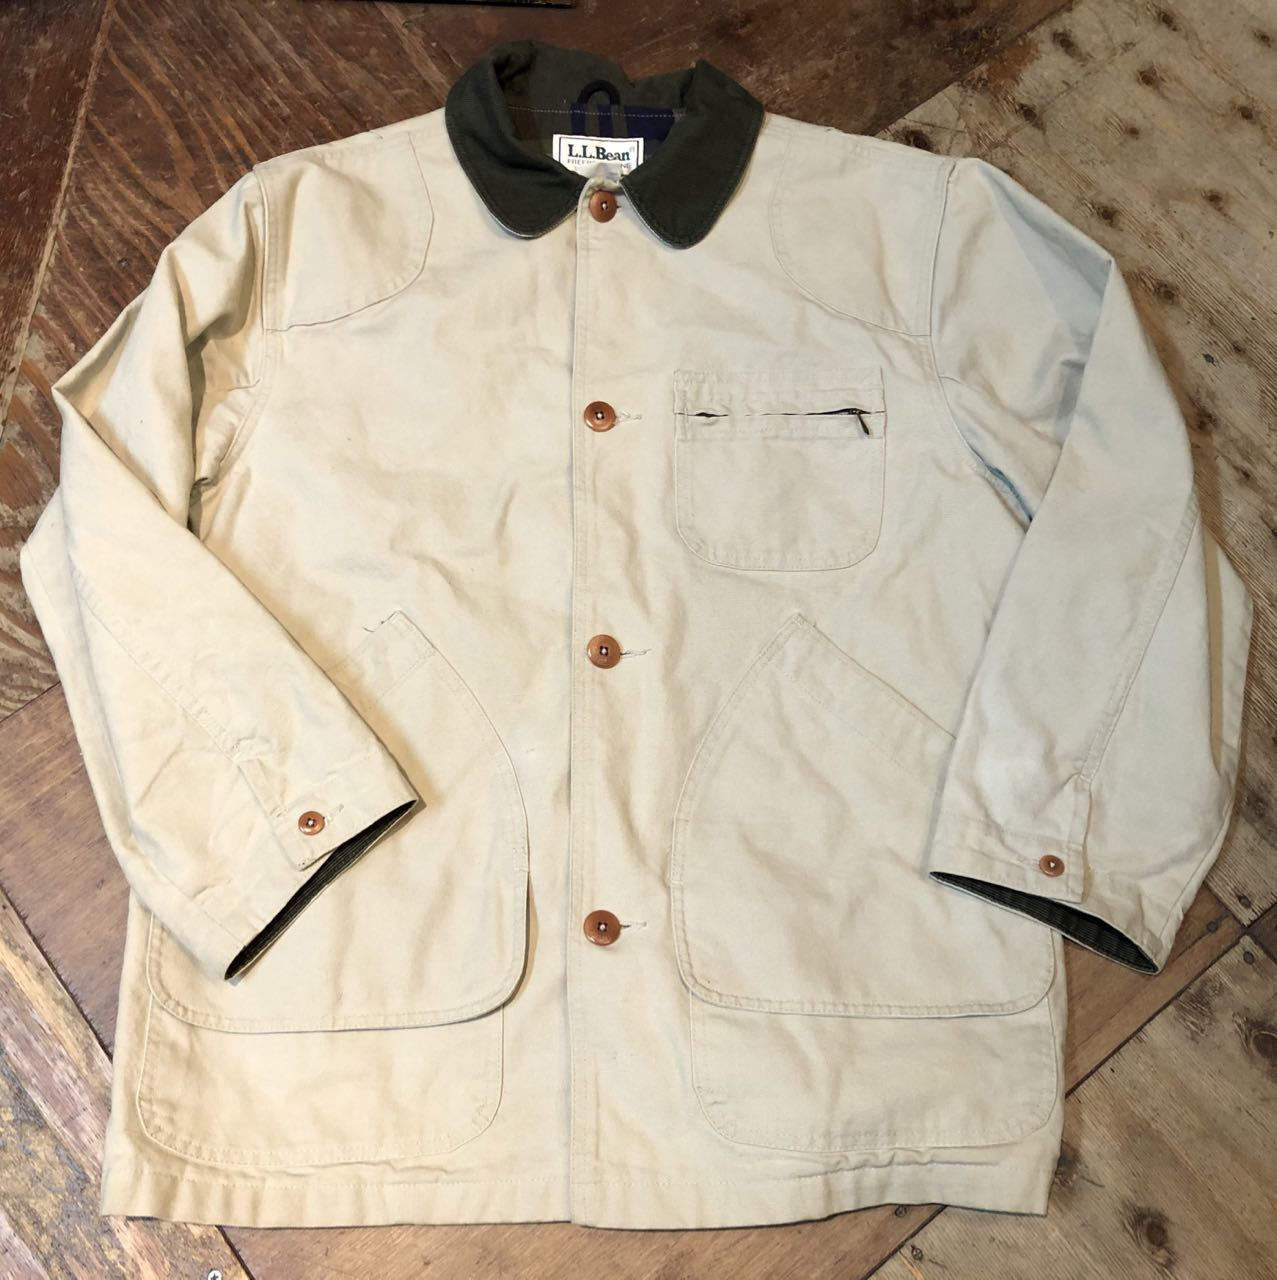 2月1日(土)入荷!80s  MADE IN U.S.A L.L Bean Hunting Jacket !_c0144020_13164491.jpg